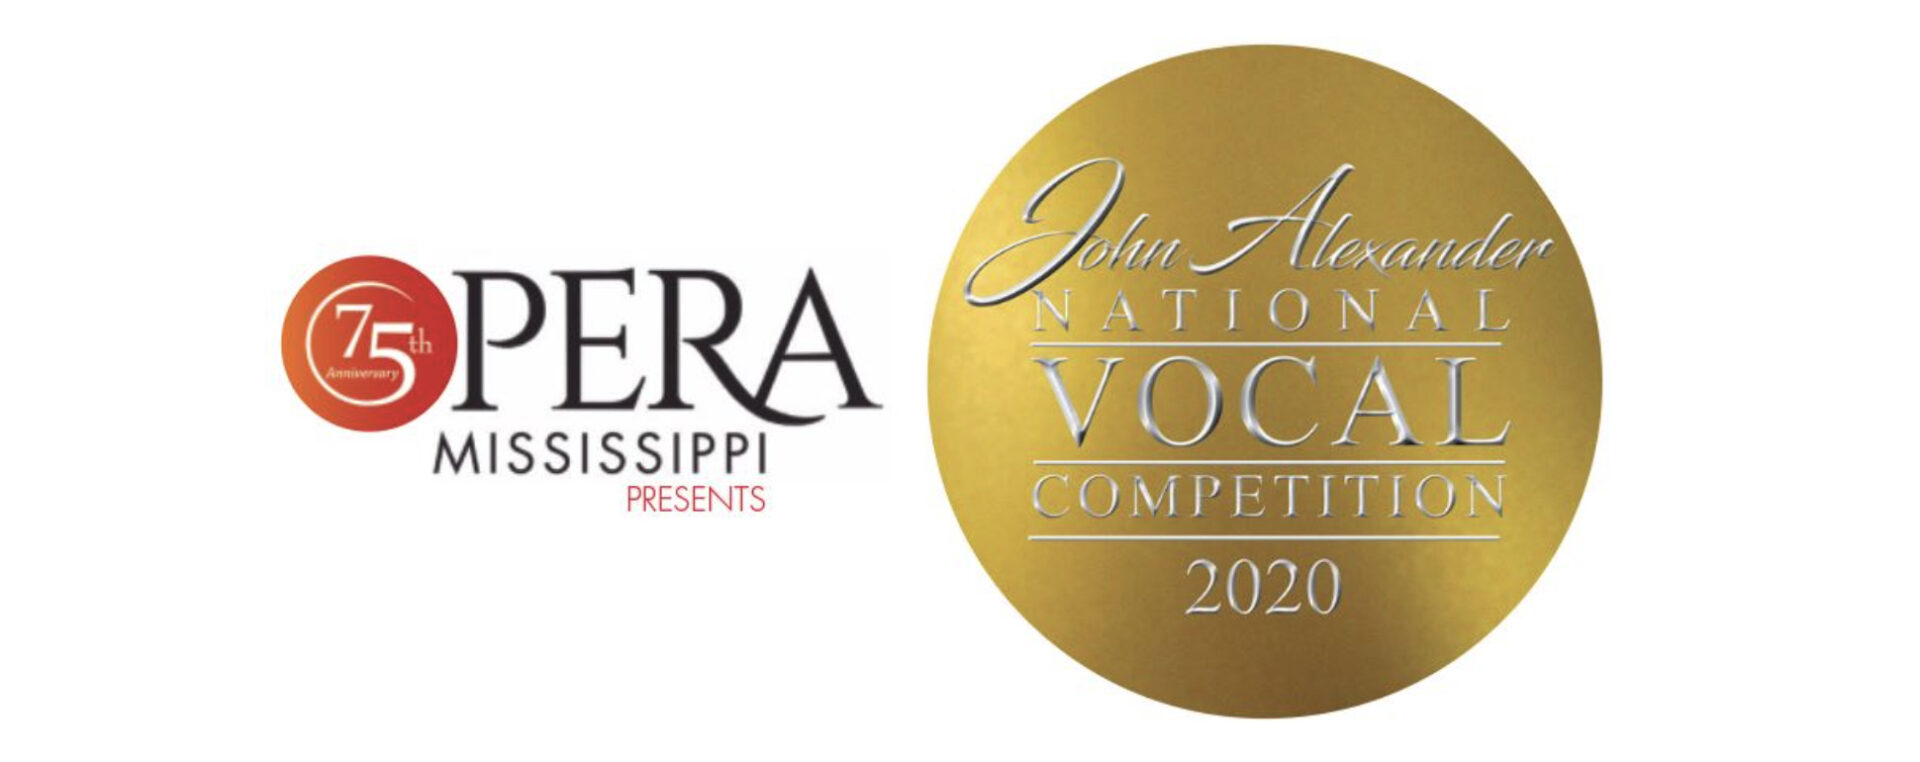 The John Alexander National Vocal Competition